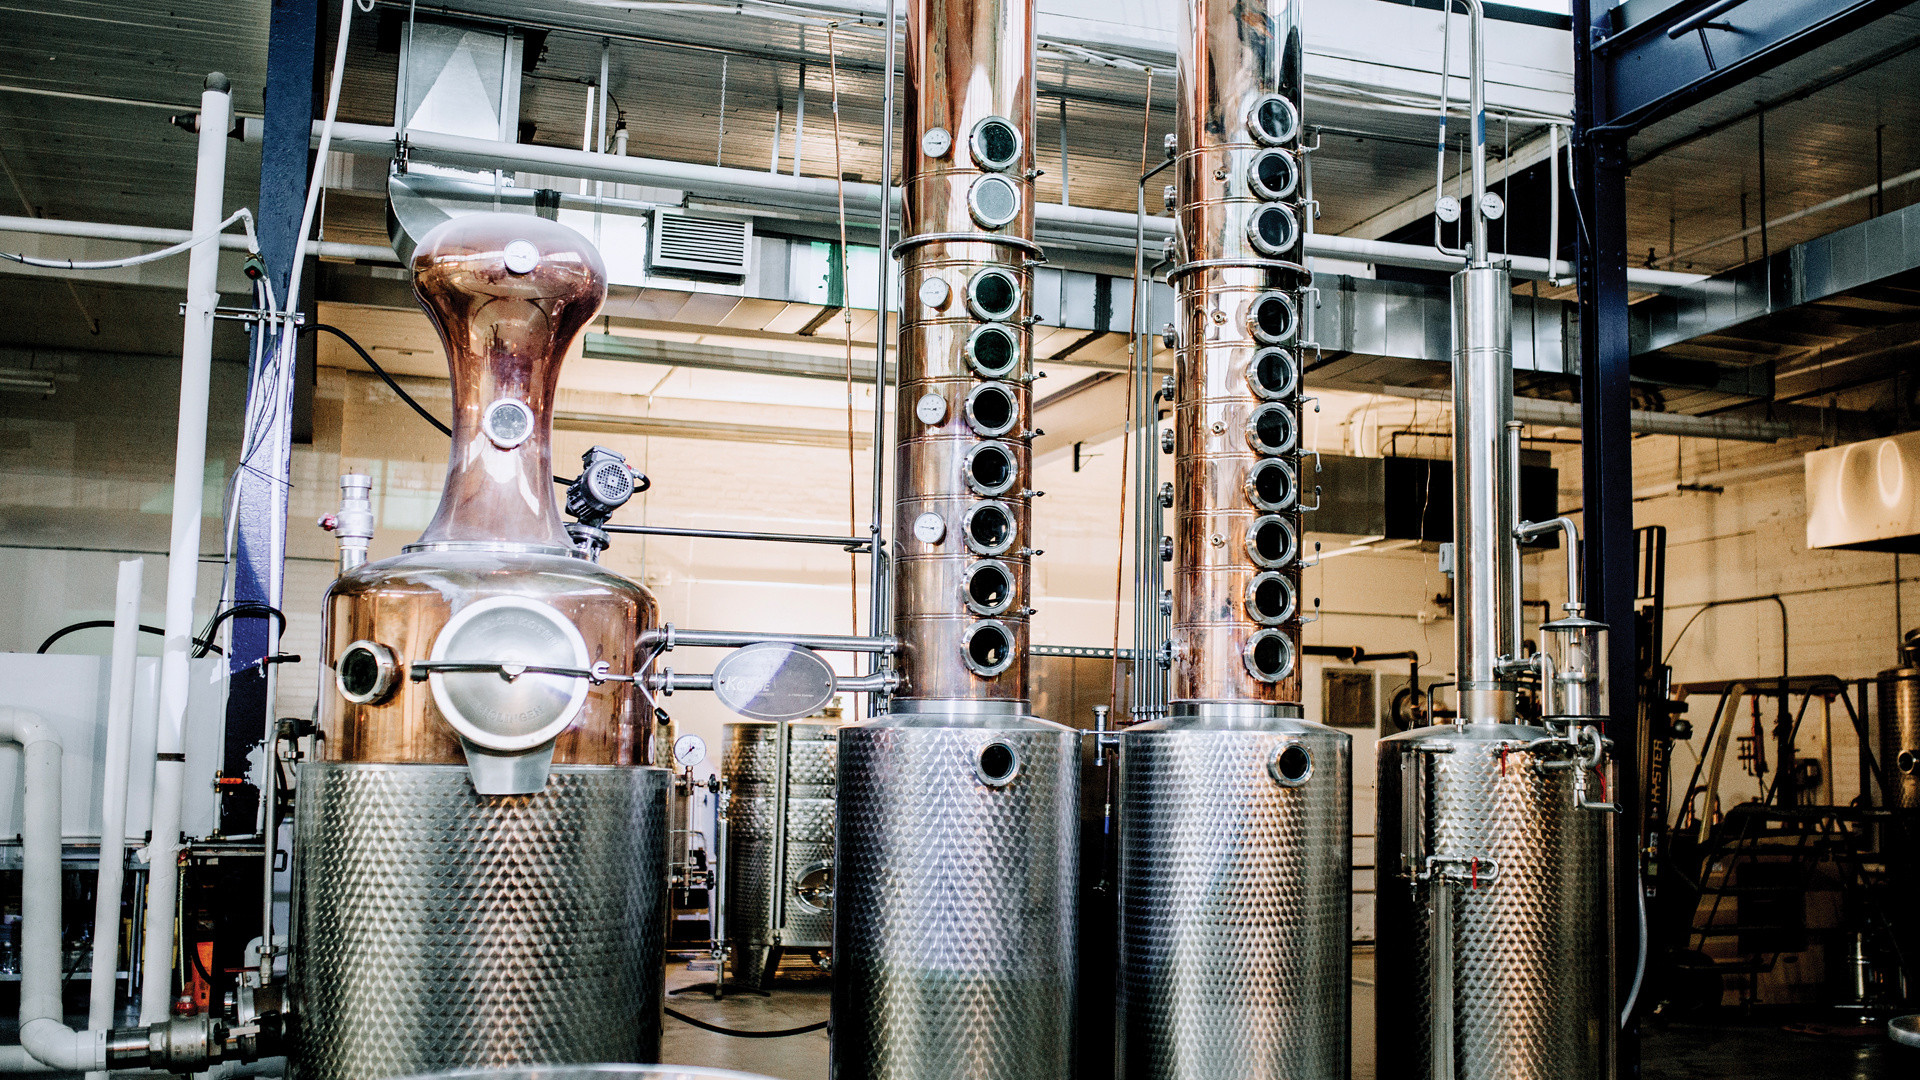 Alcohol delivery in Toronto | the stills inside Reid's Distillery in Toronto